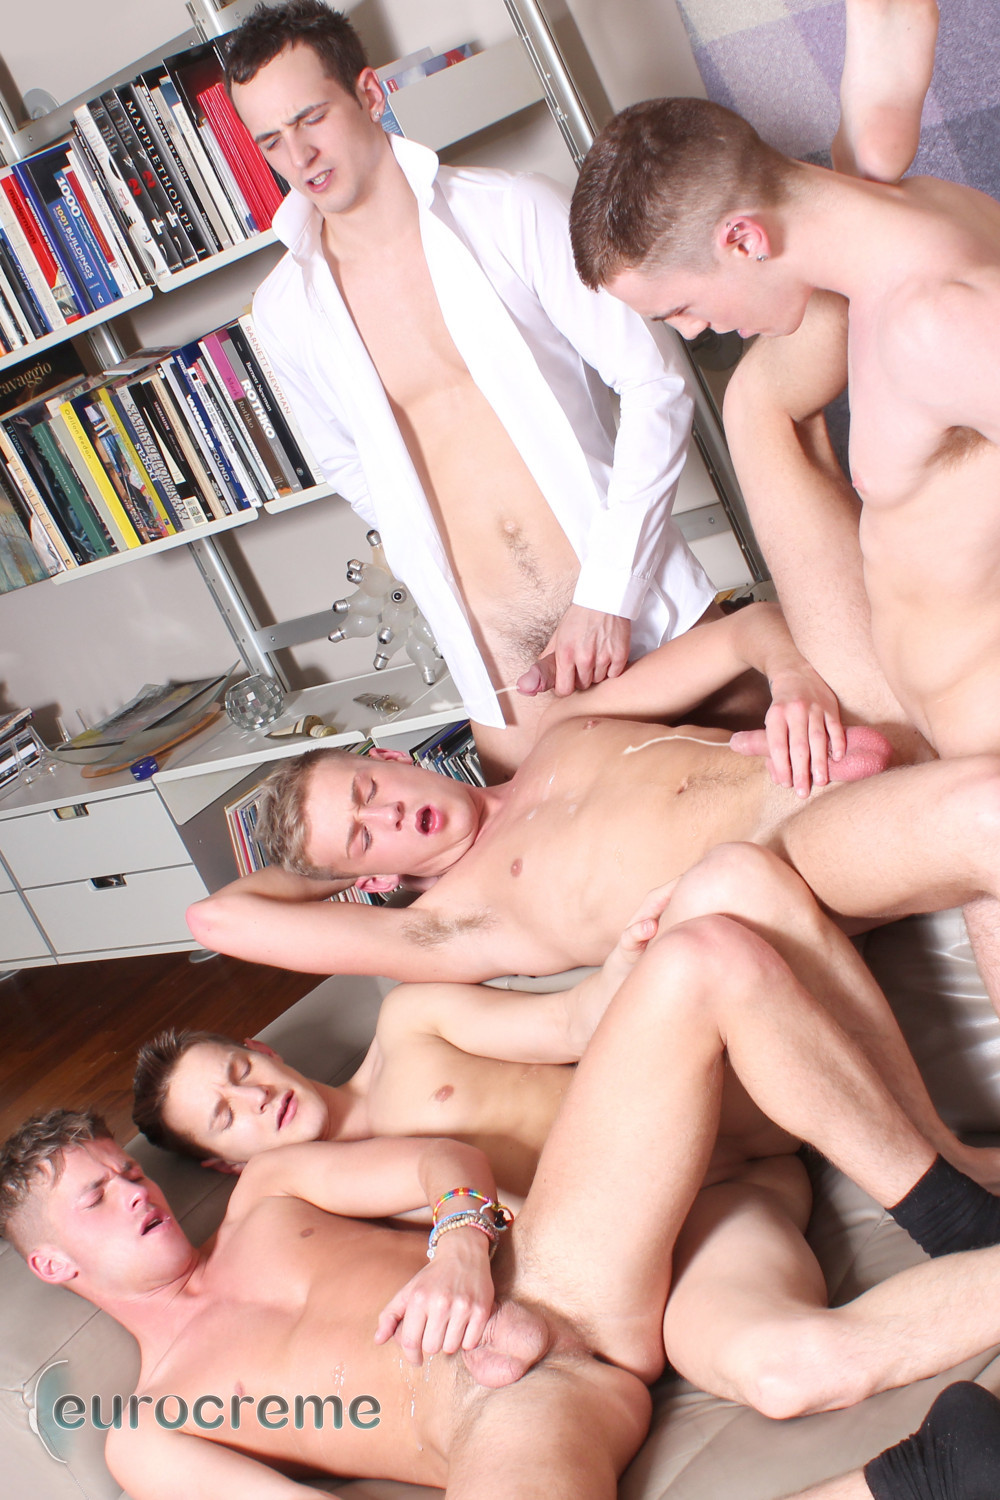 Eurocreme Darius JP McKensie Danny and Luke Big Cock Twink Orgy Amateur Gay Porn 10 Birthday Party Turns Into a Big Cock Amateur Twink Orgy